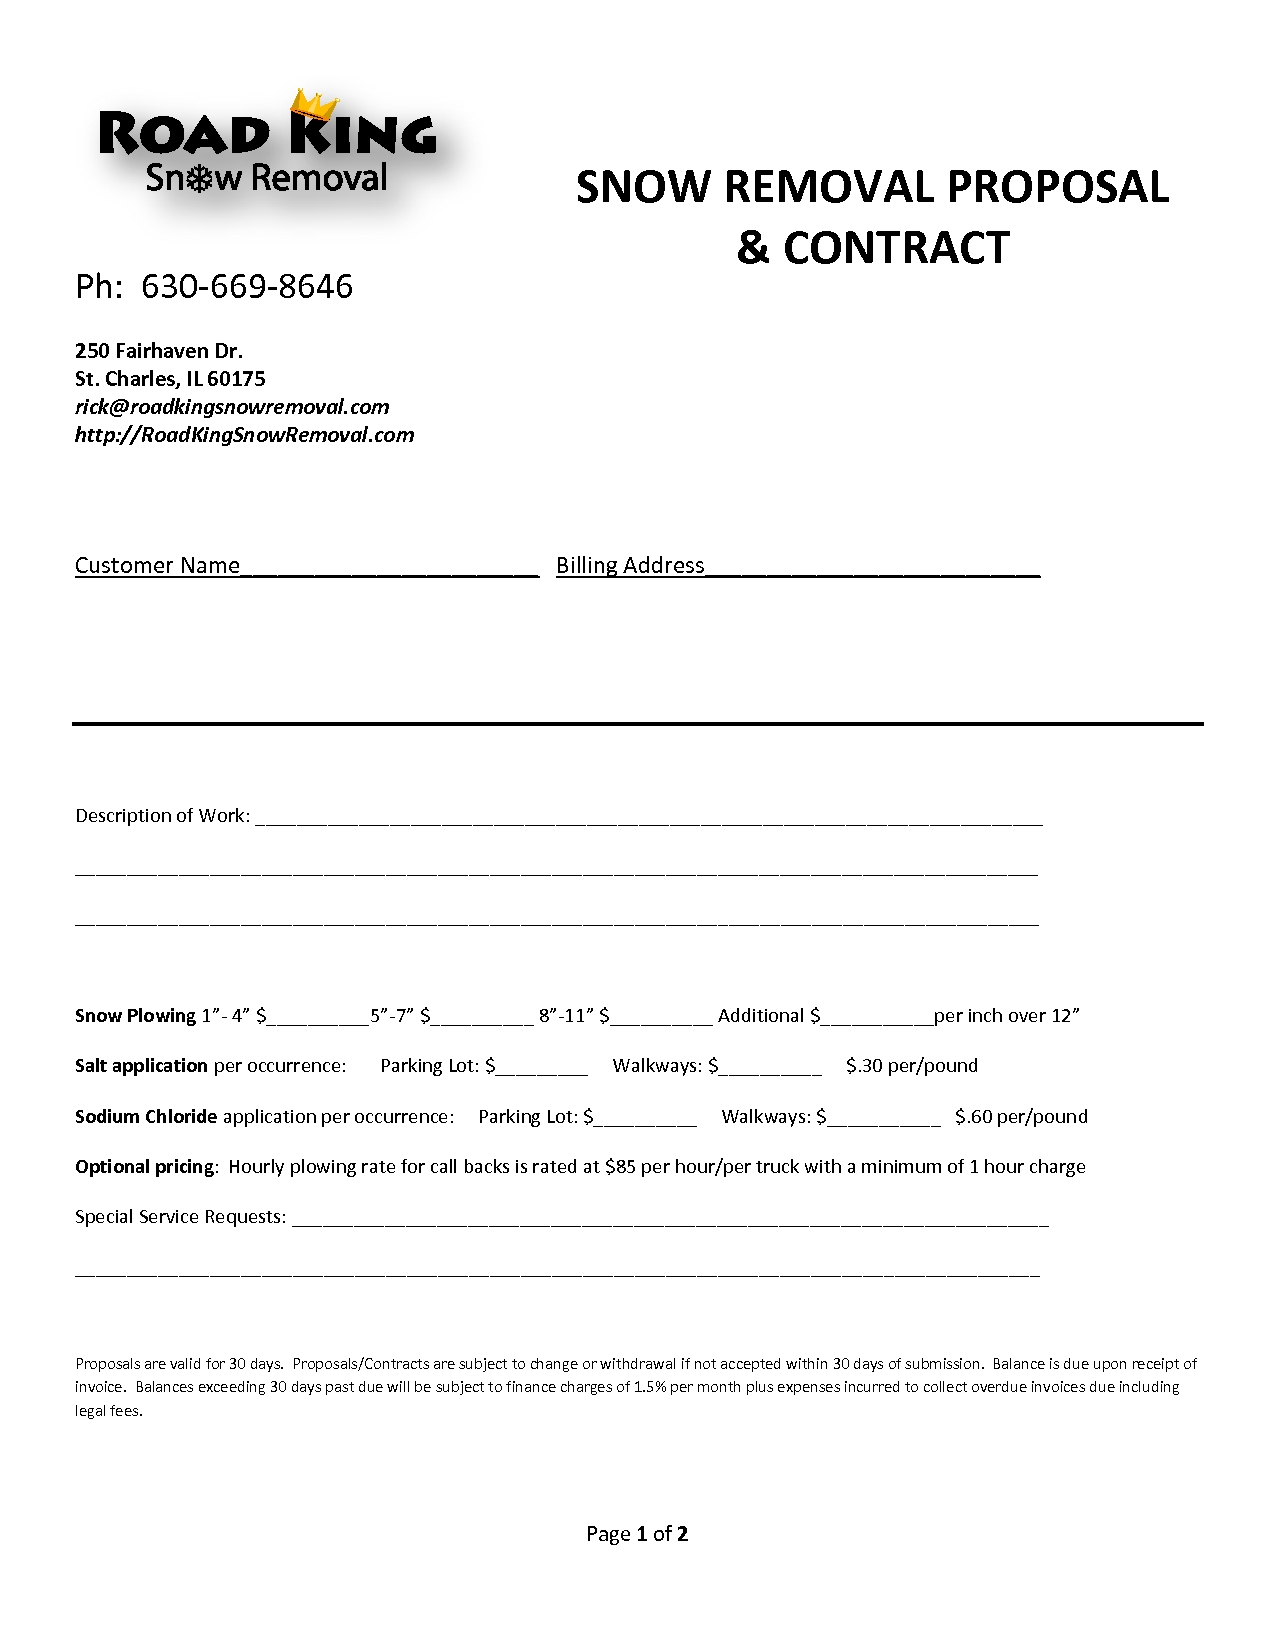 Snow removal invoice template invoice template ideas for Residential snow removal contract template